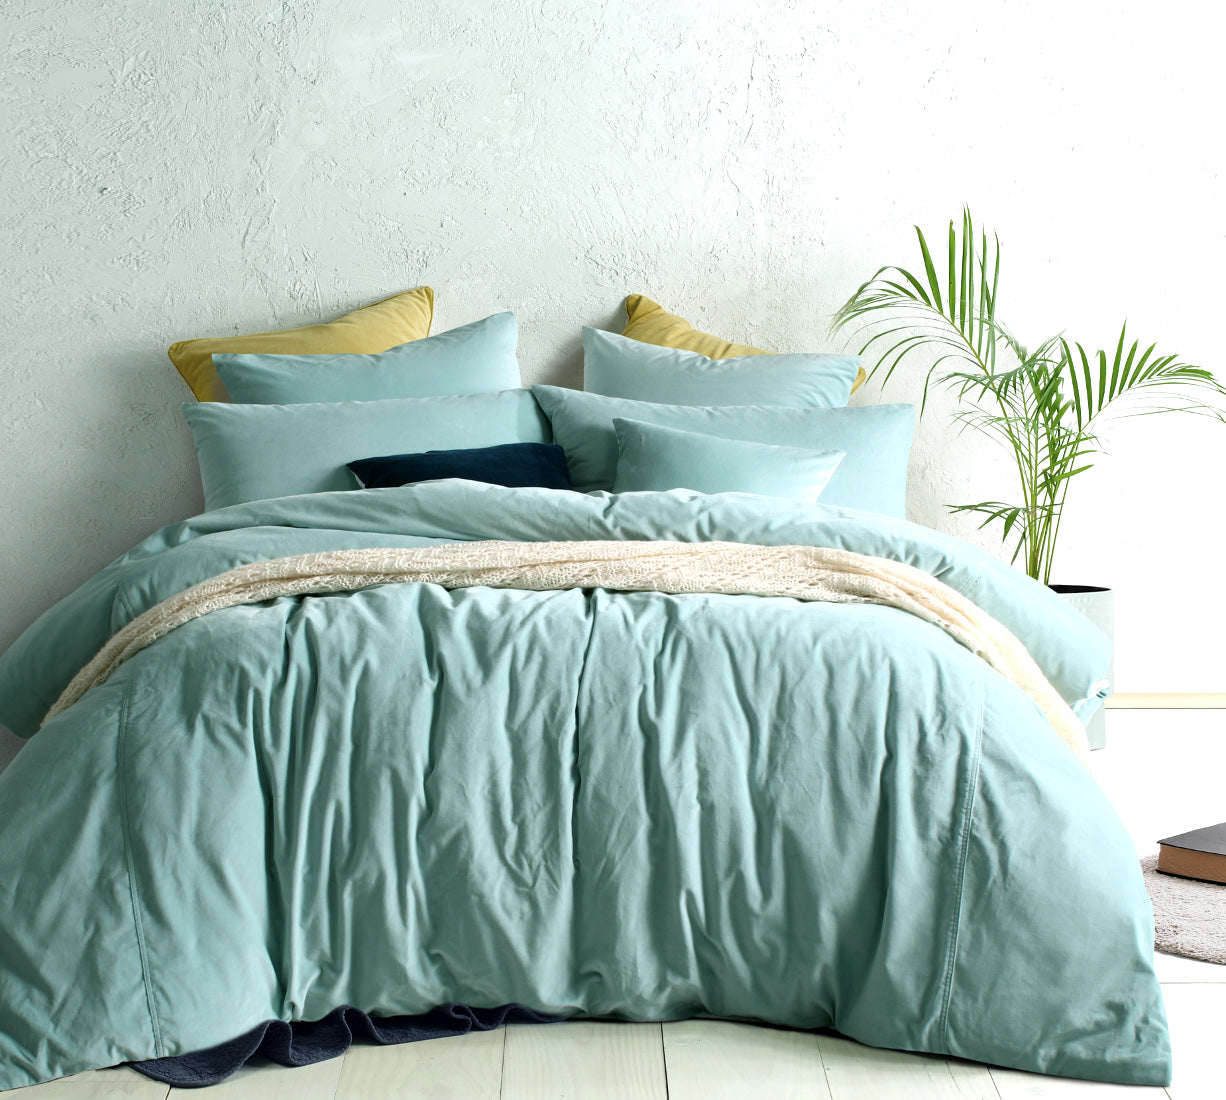 Mist Vintage Velvet cotton quilt / duvet cover set with pillowcases